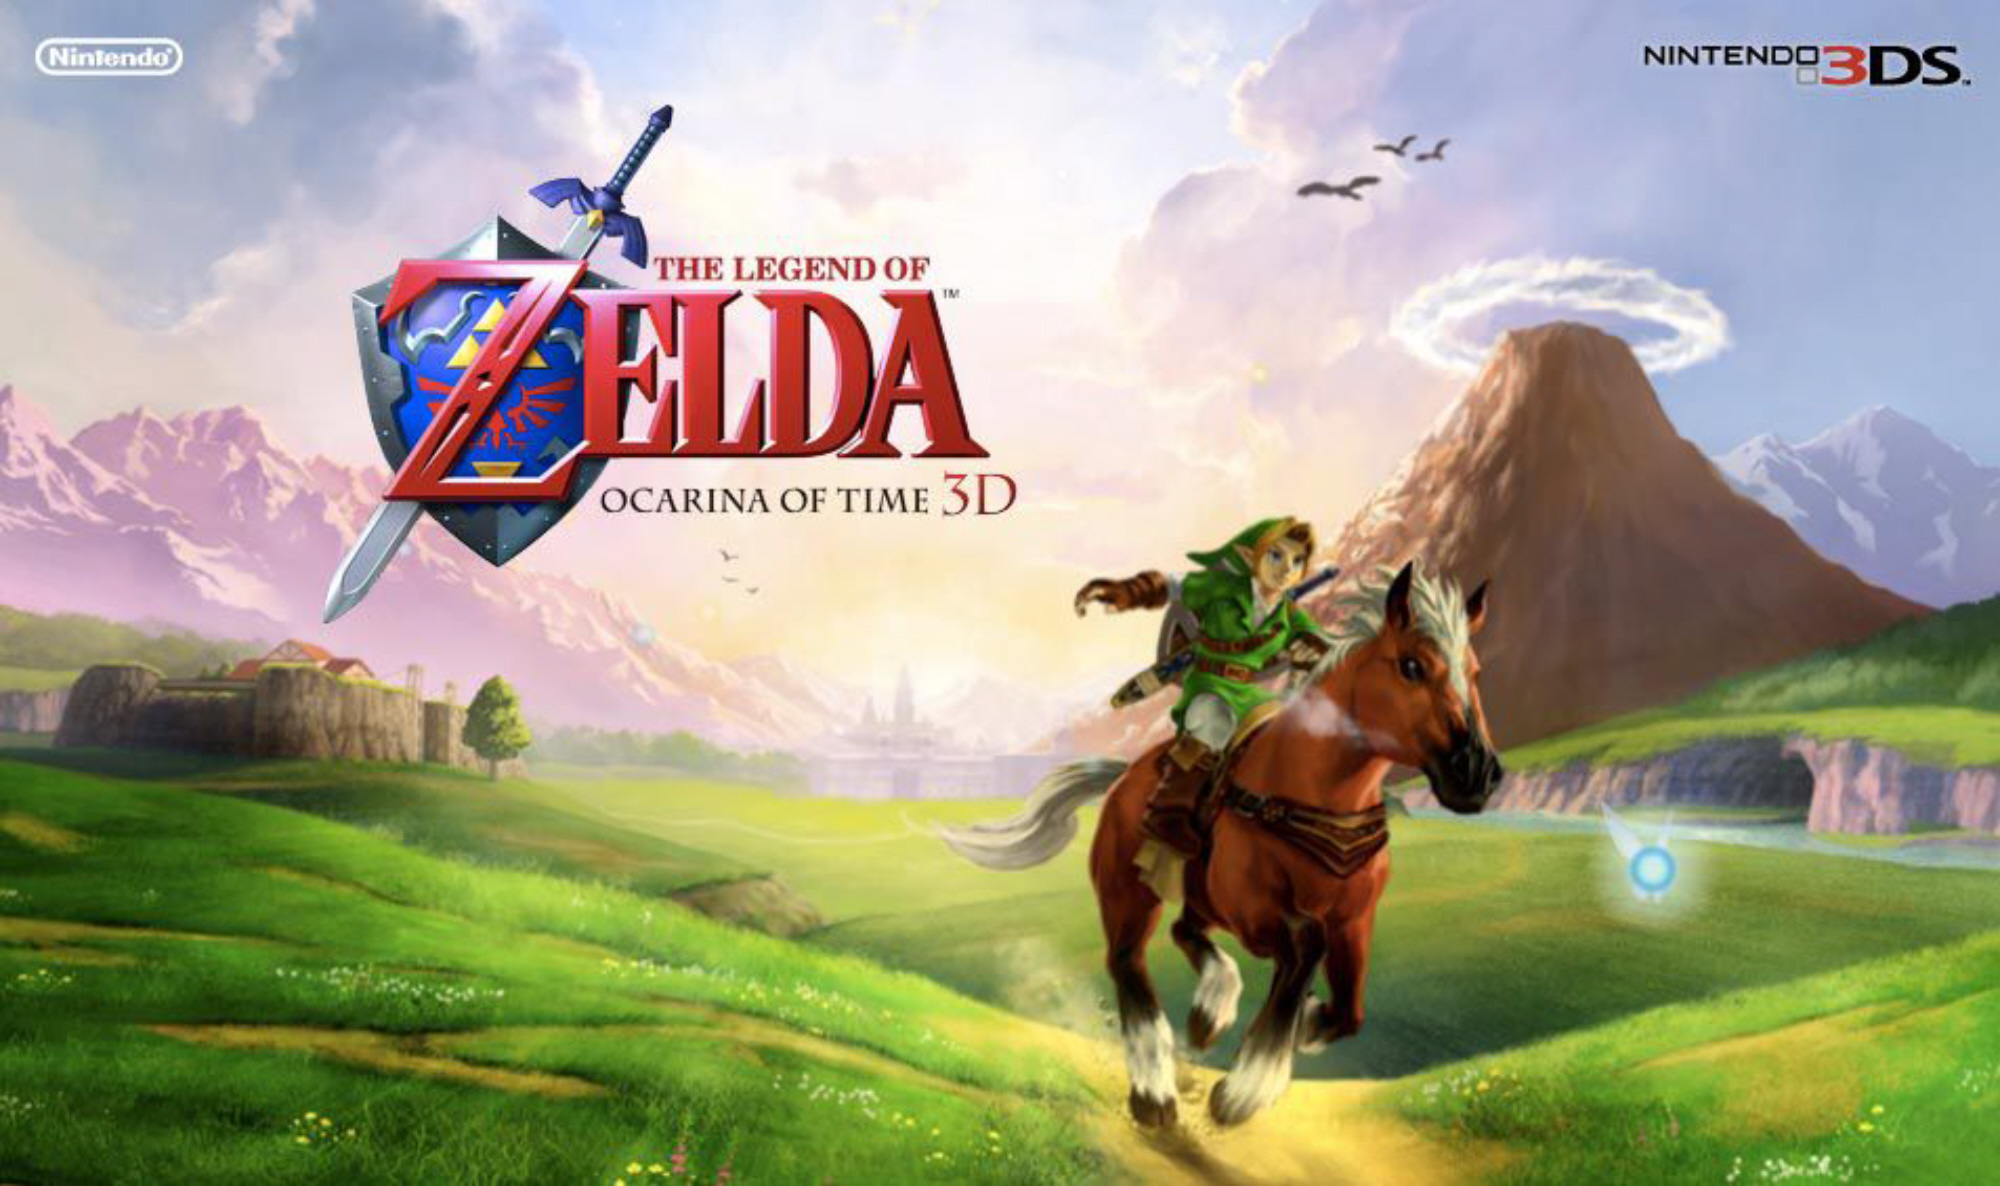 the legend of zelda: ocarina of time images ocarina of time 3d hd